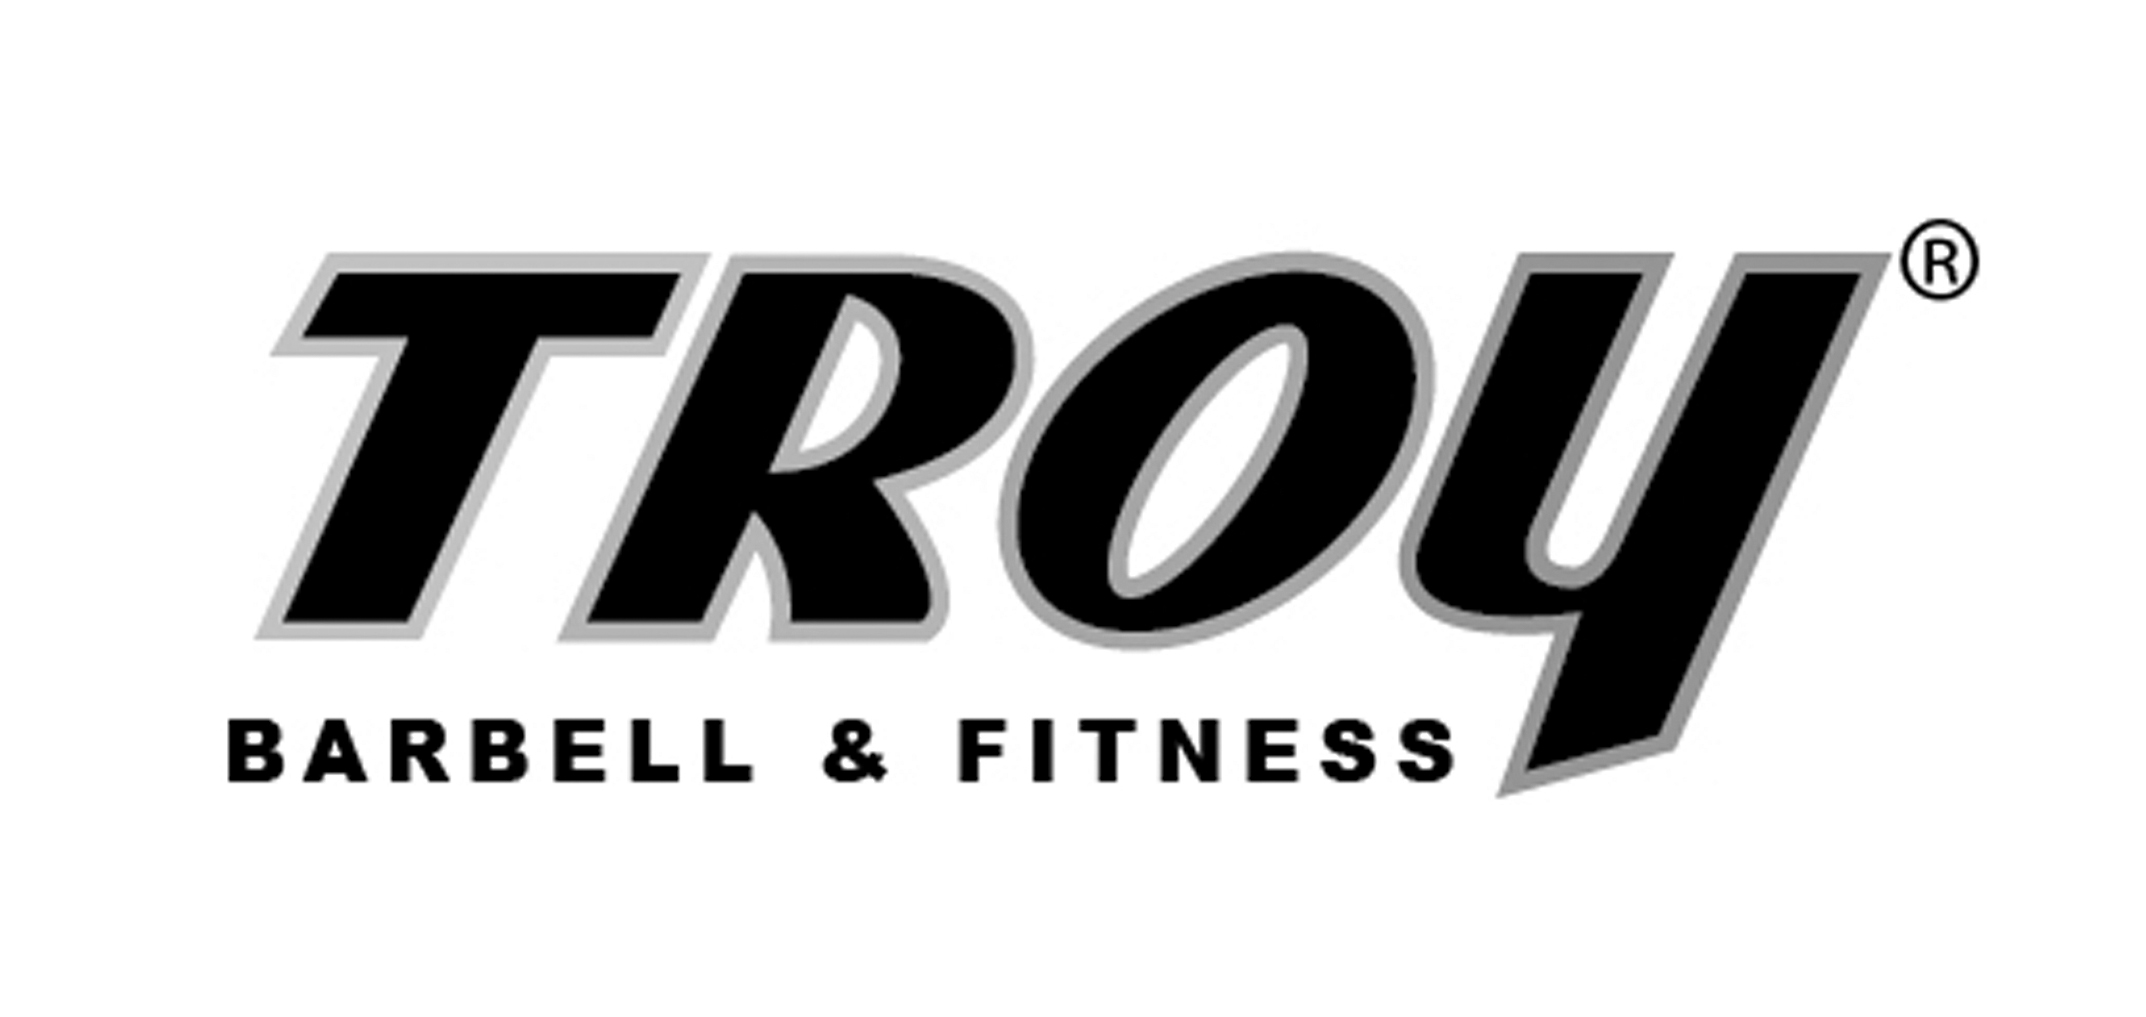 Troy Barbell & Fitness